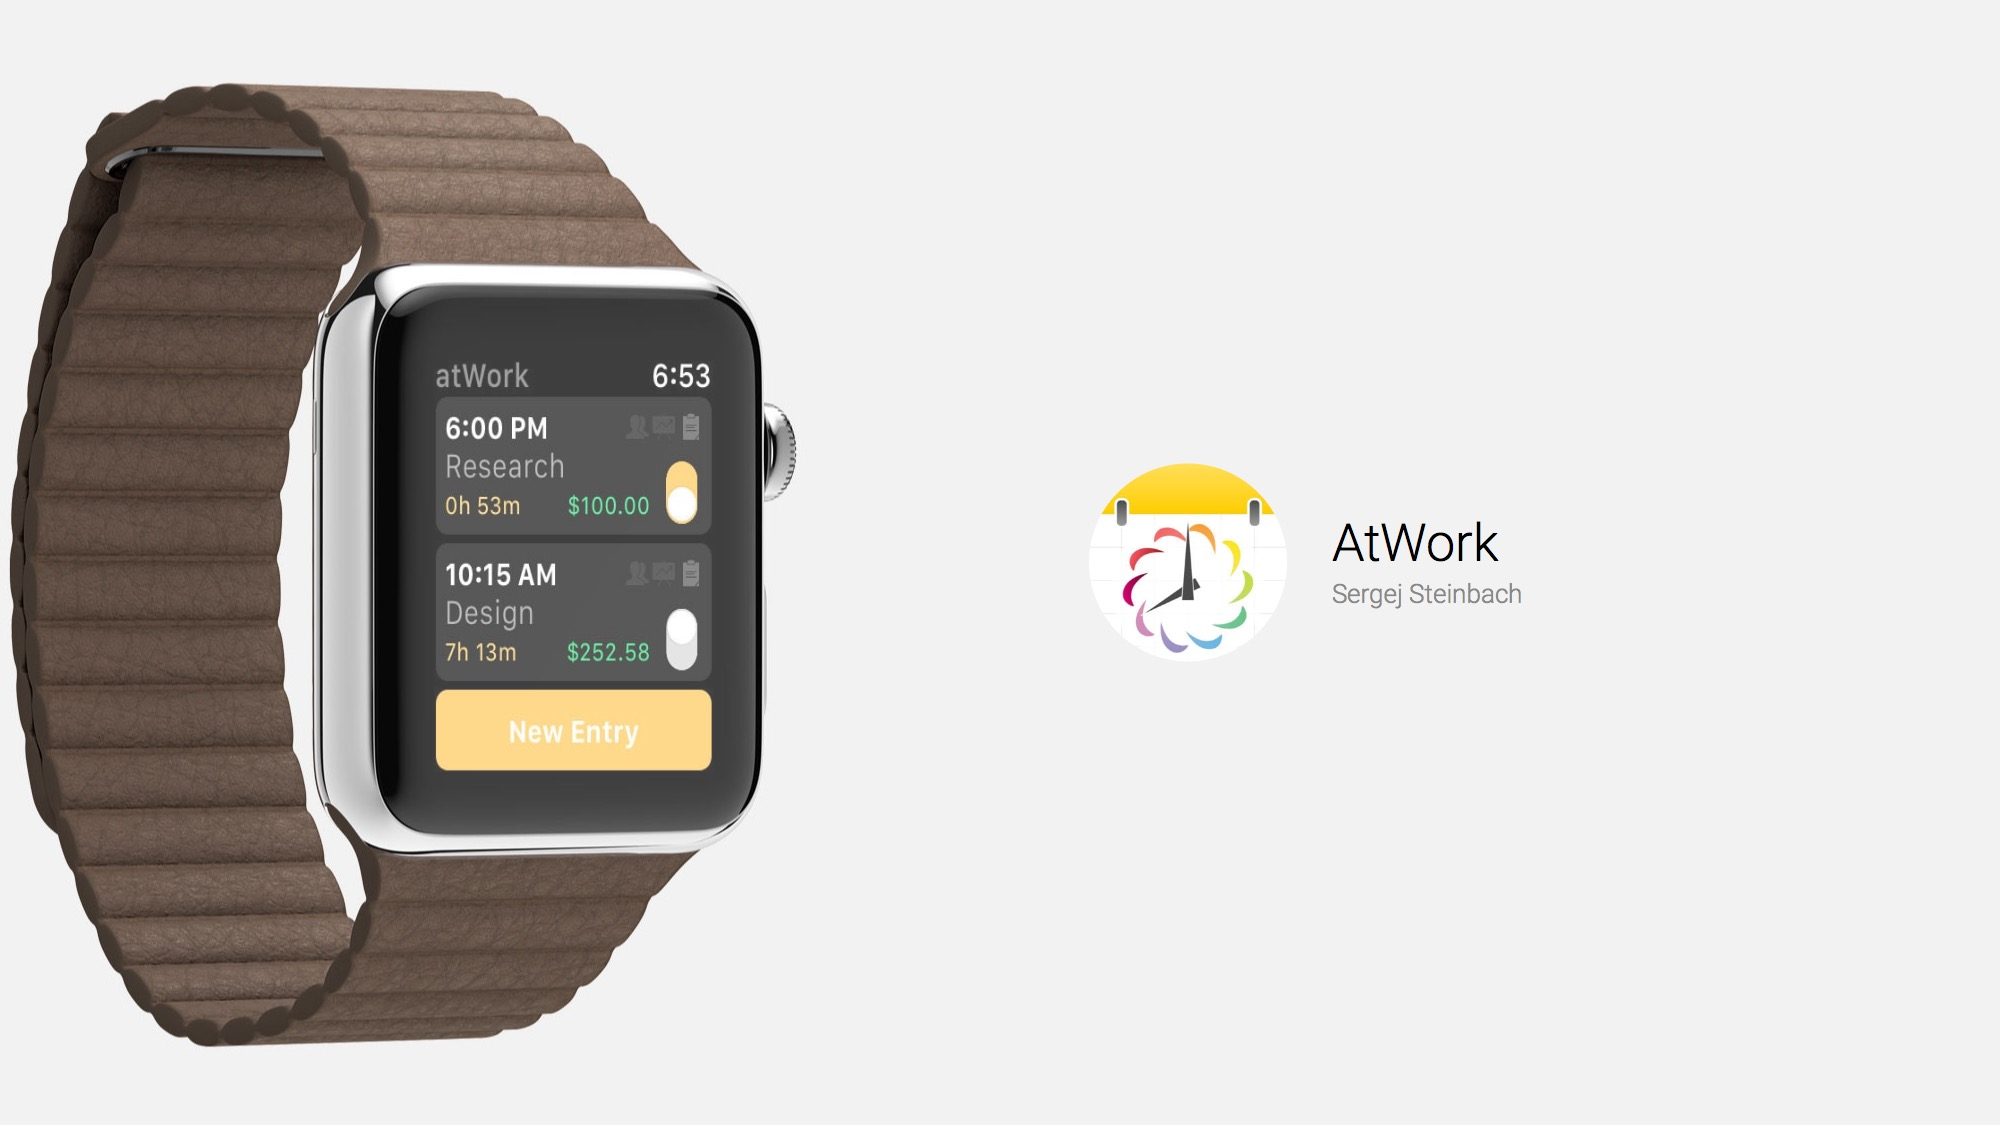 Productivity and Time Tracking on Apple Watch With atWork